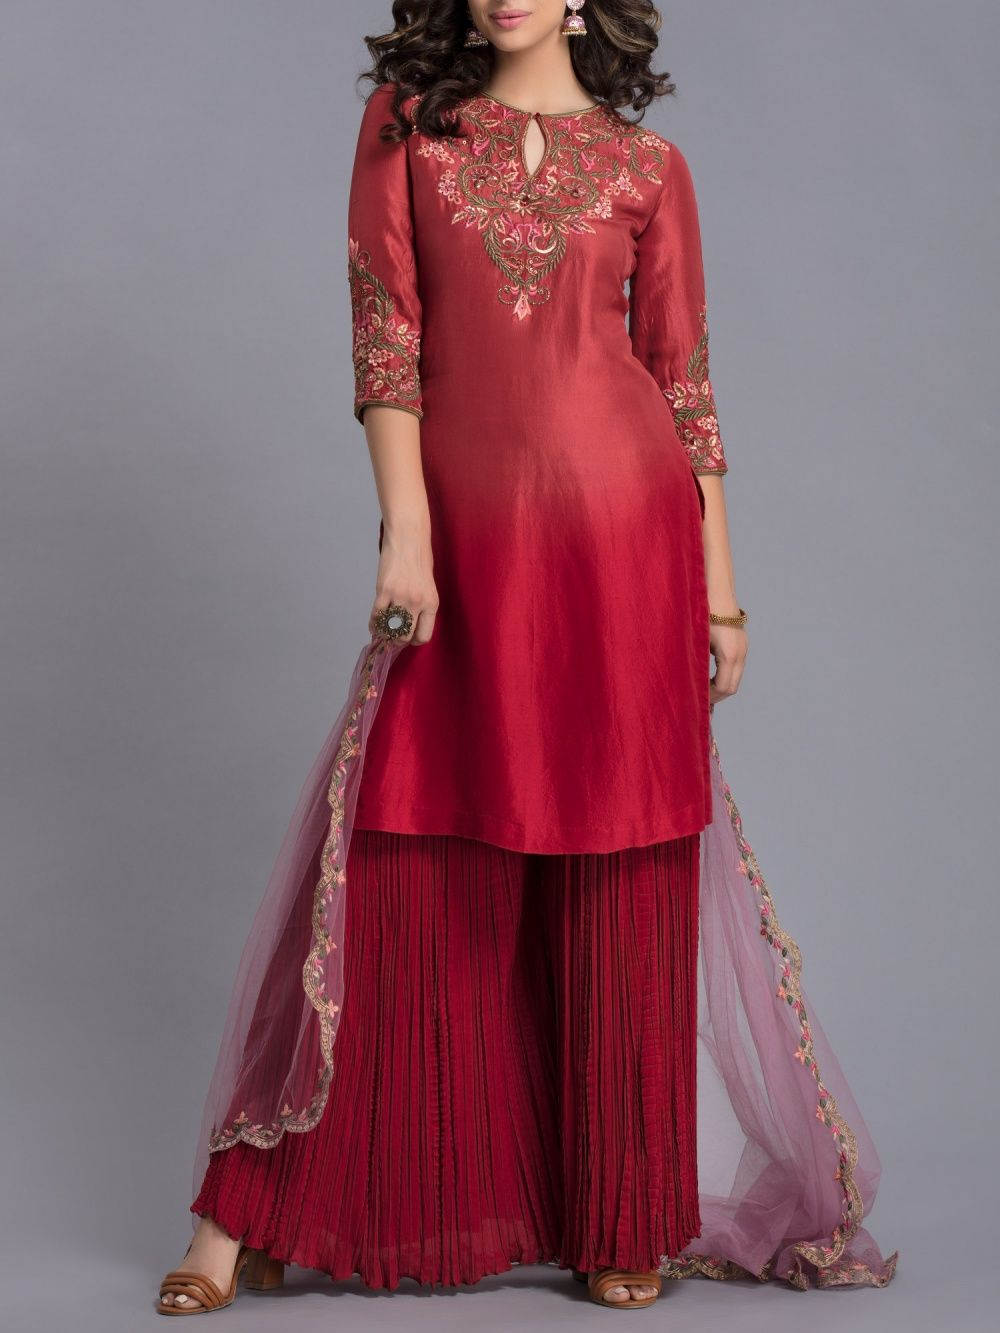 2633cffd8aa Avdi Salwar Suits and Sets : Buy Avdi Red Shaded Kurta Set Online ...